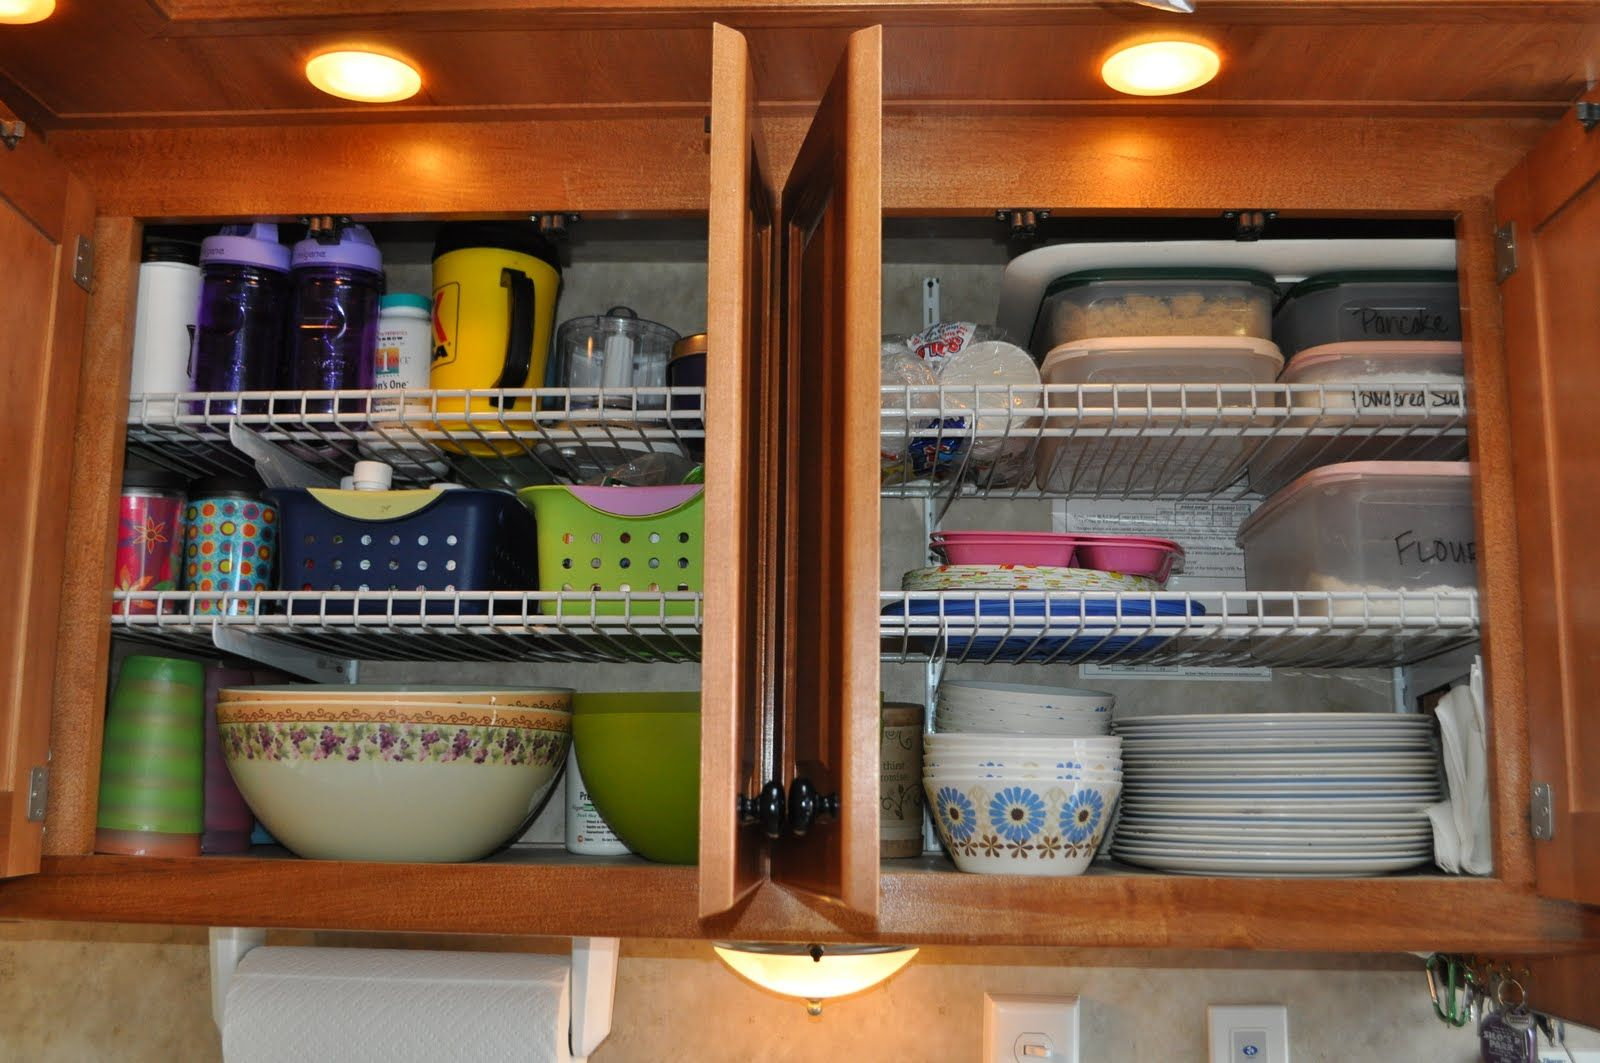 Come Take A Tour Of Our RV Kitchen, And Learn About How We Organize It